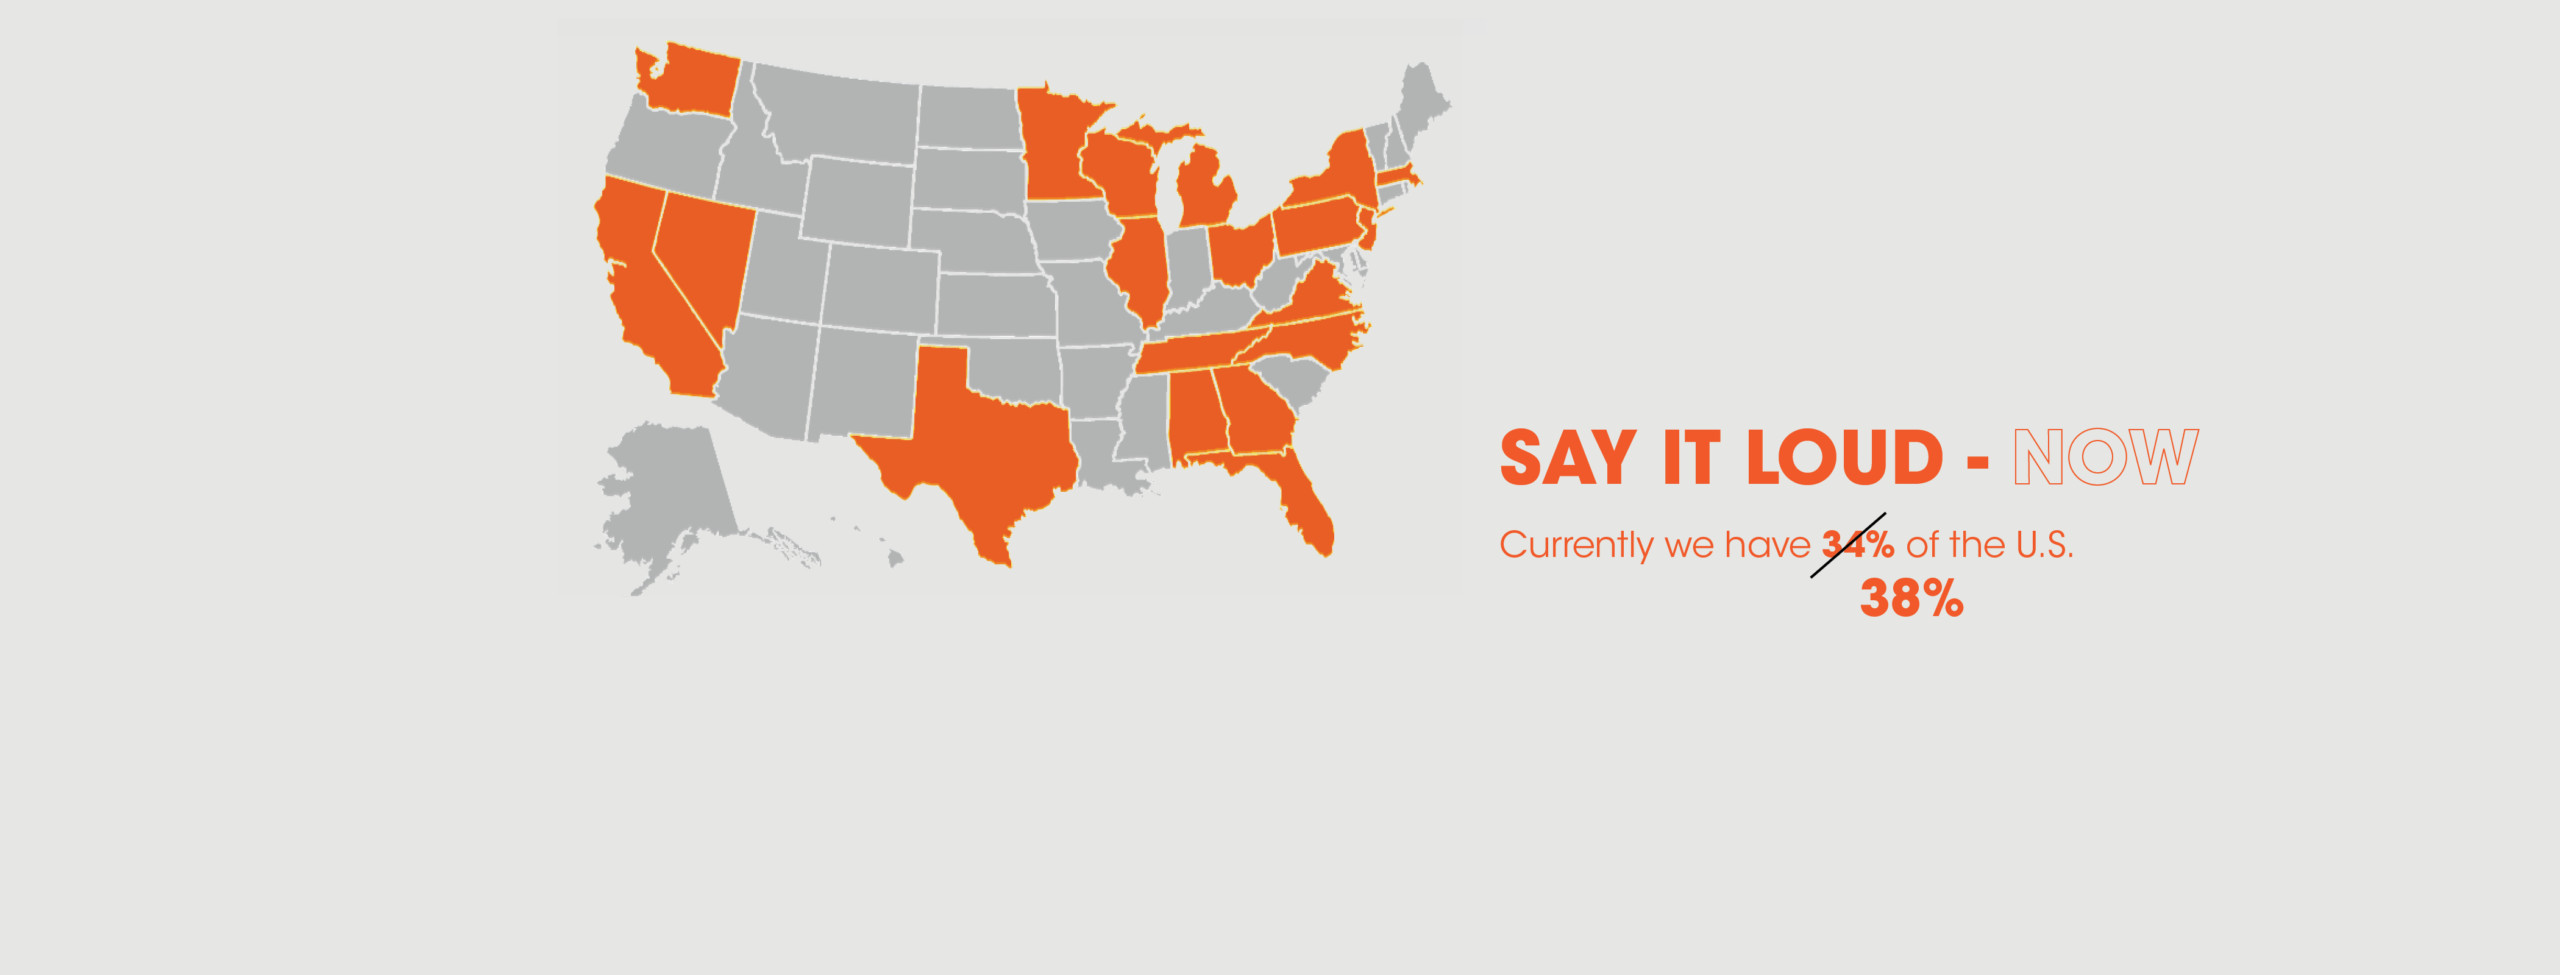 A map of the US with 19 states in orange